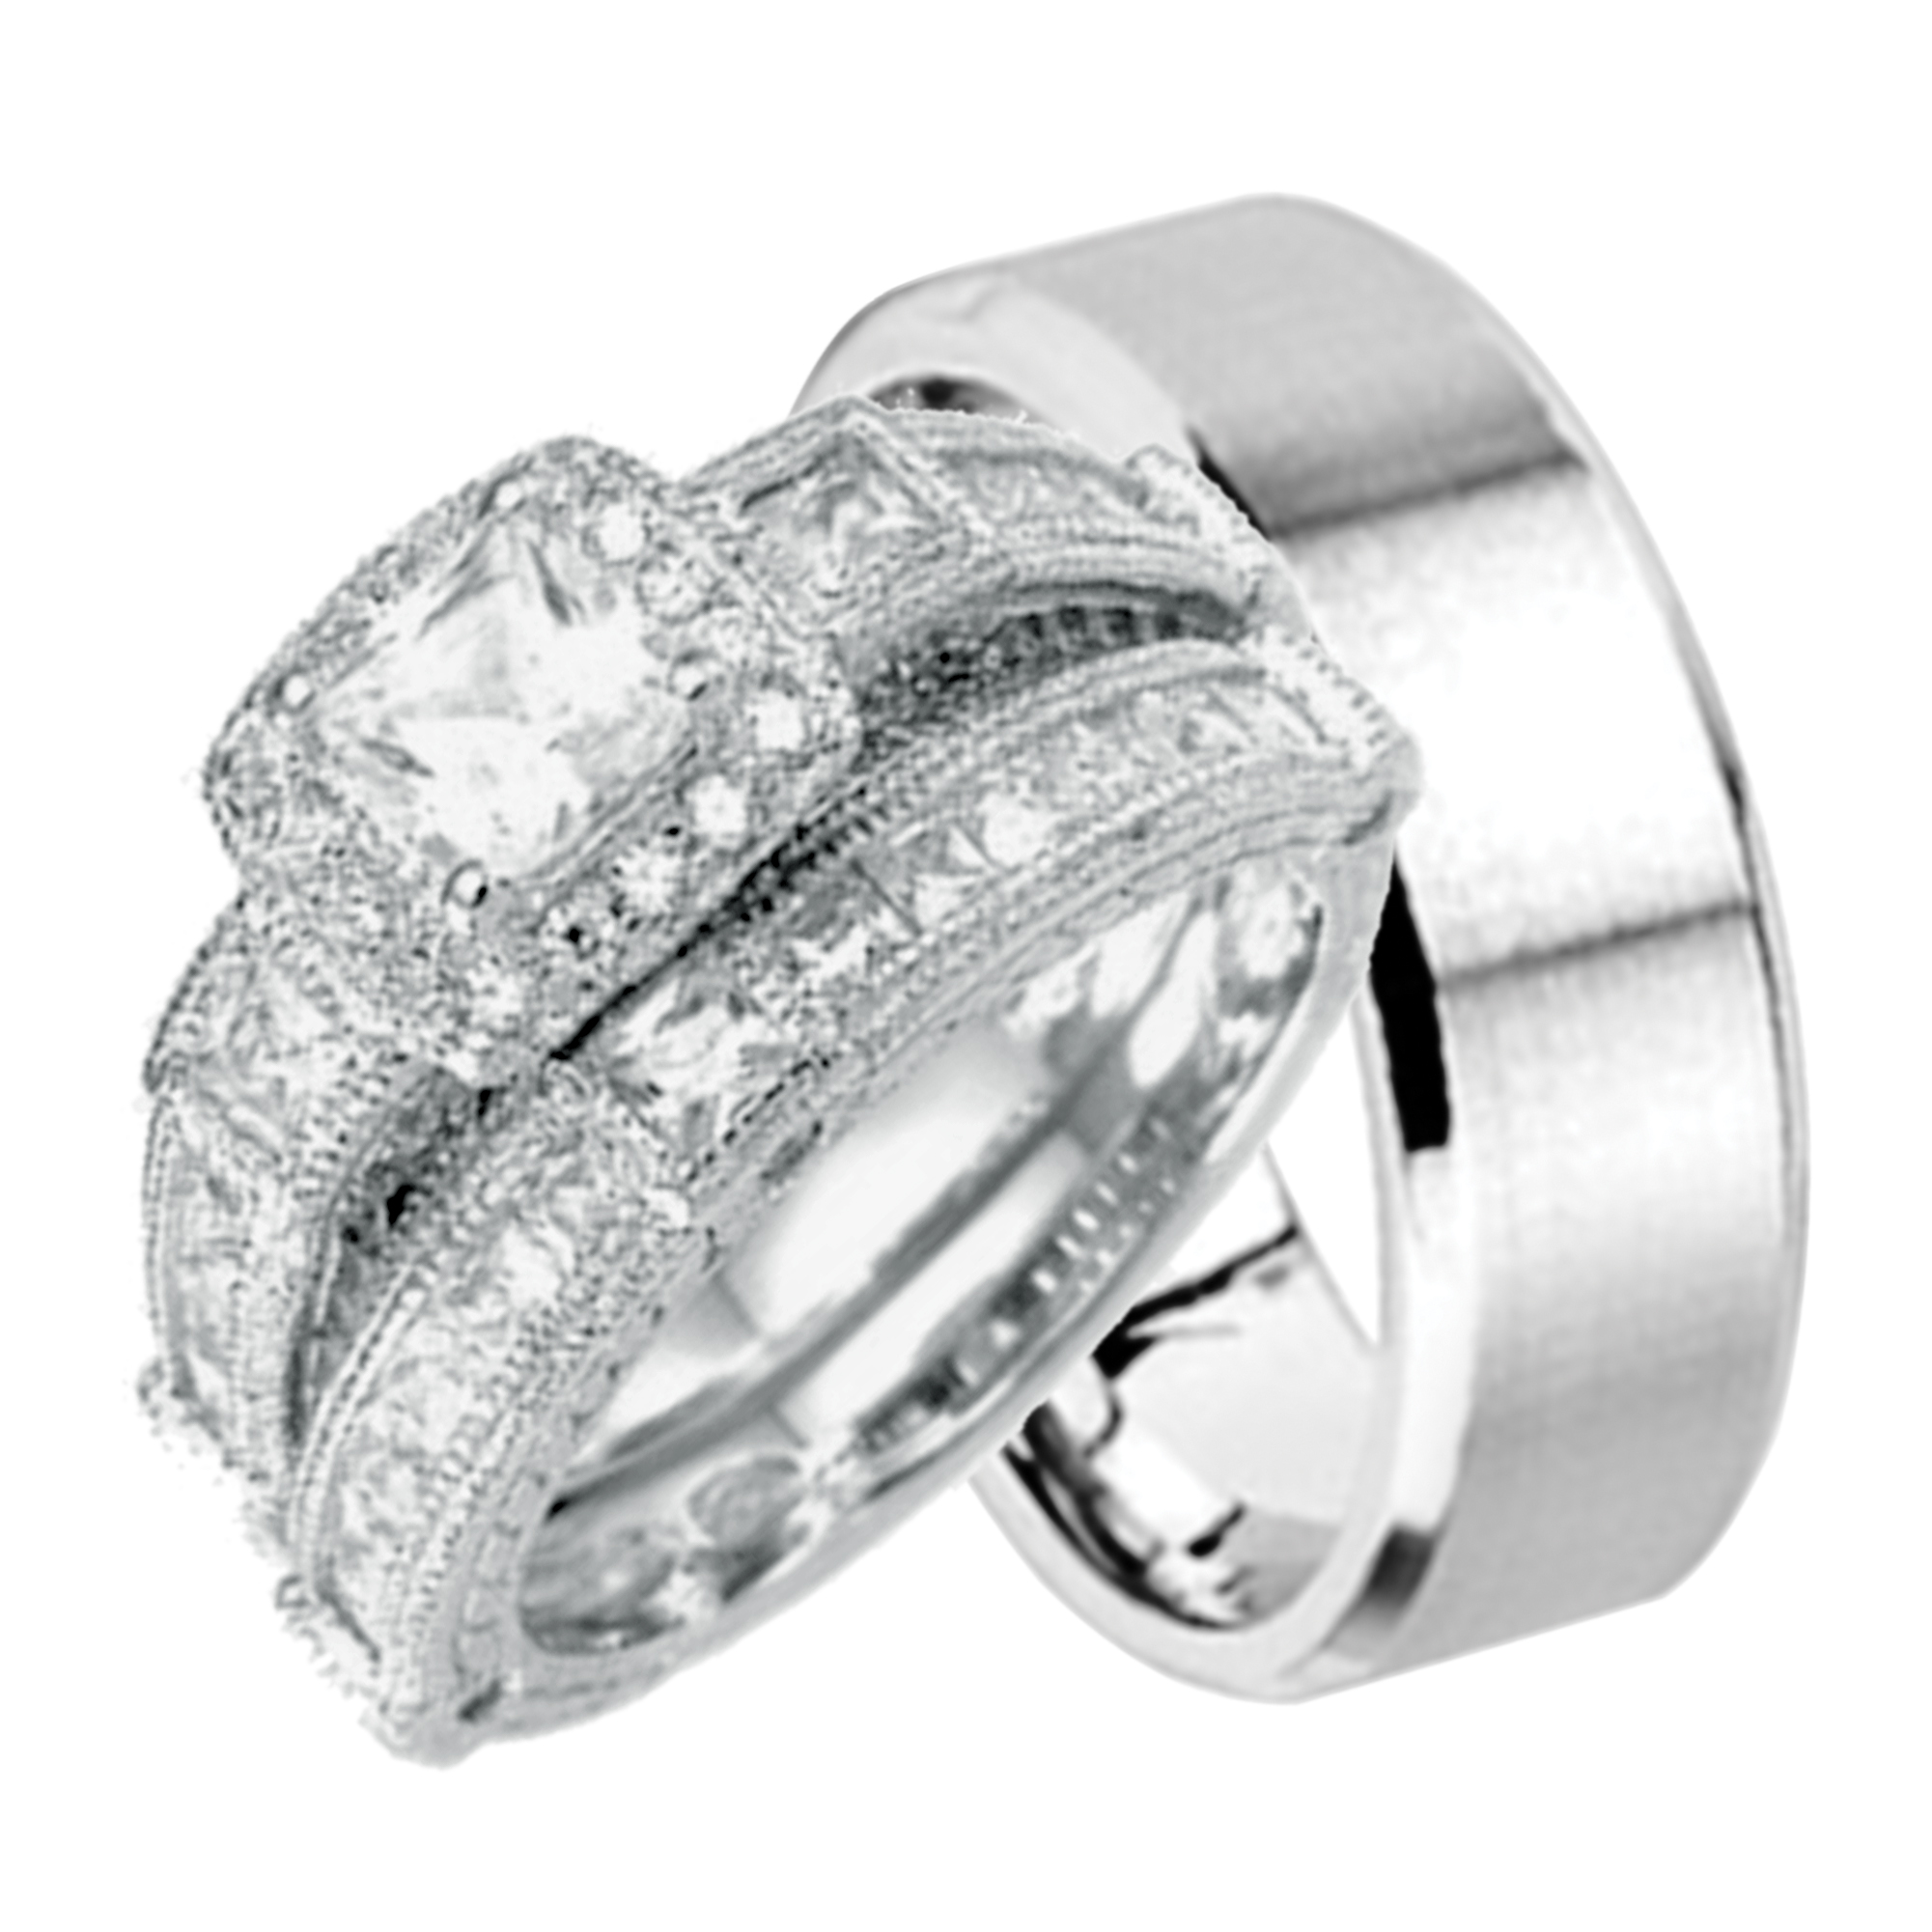 for wedding rings set walmart and affordable her sizes com his hers him ring matching bands ip choose